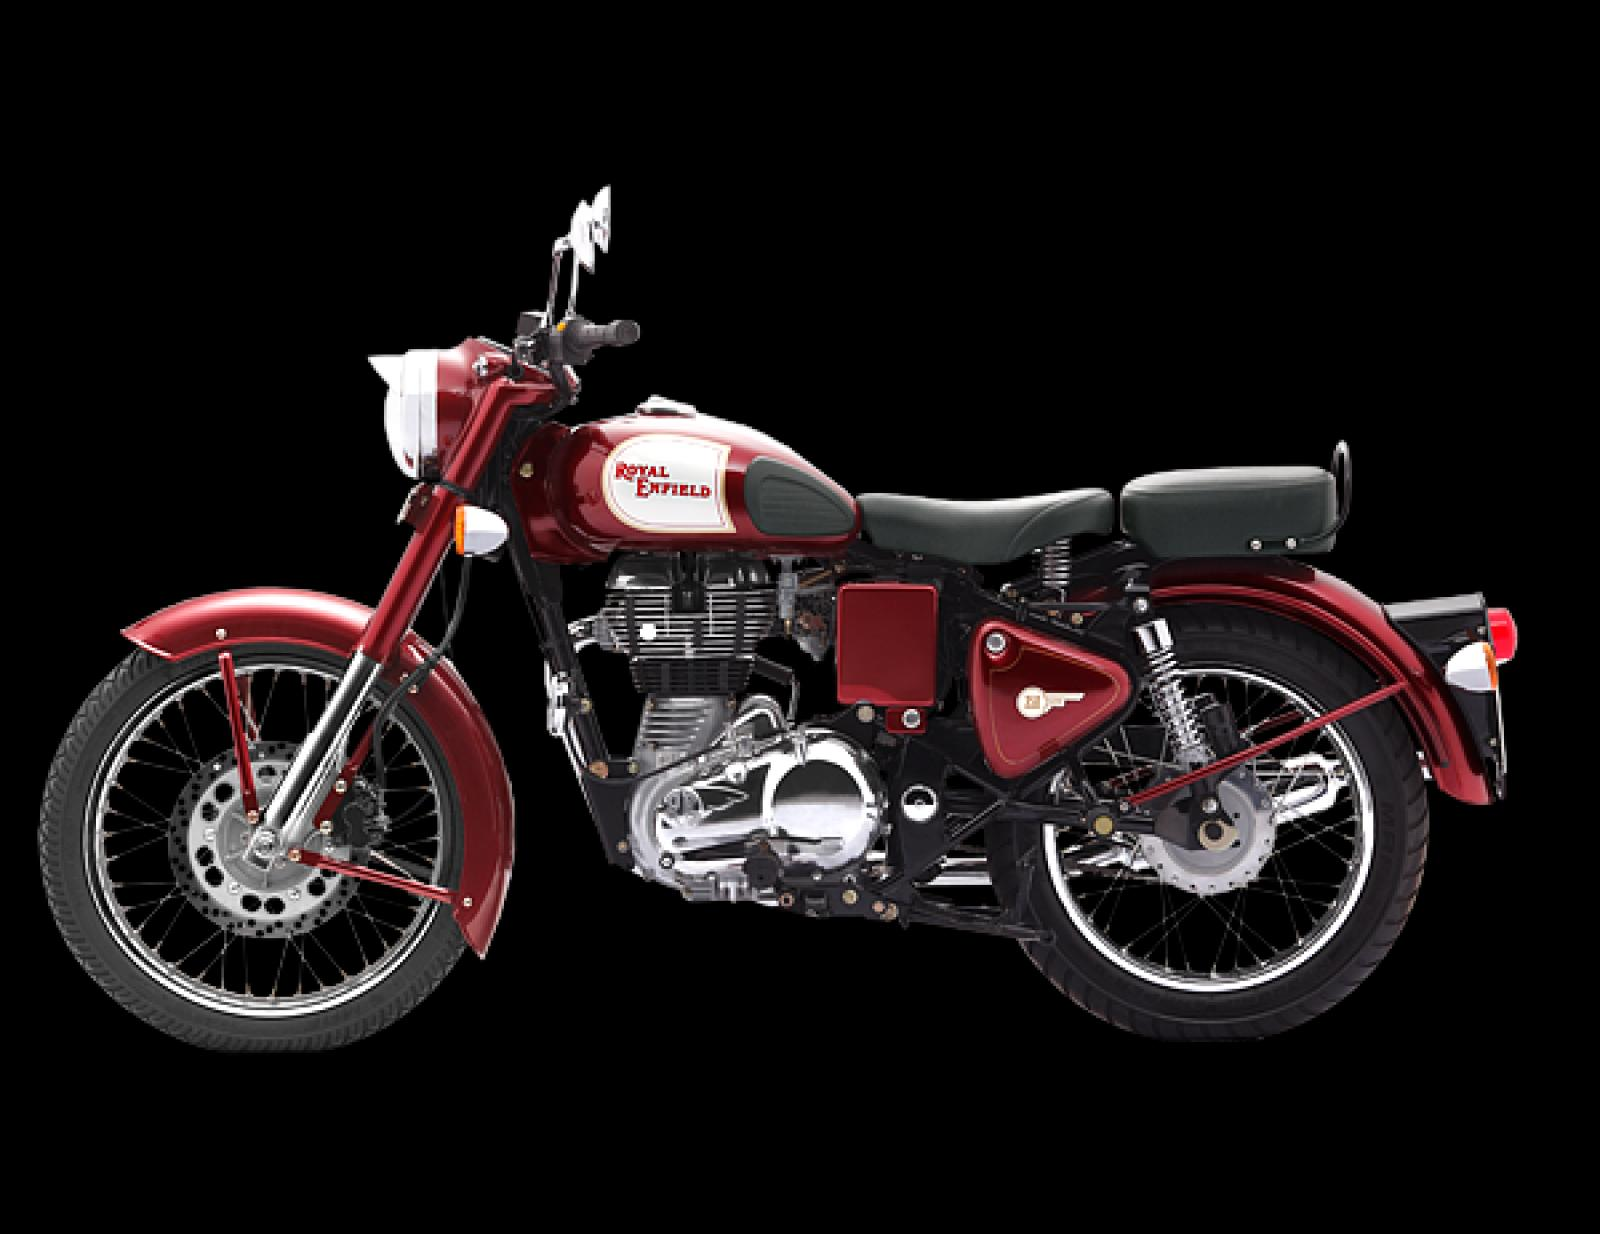 2004 Enfield US Classic 350 #10